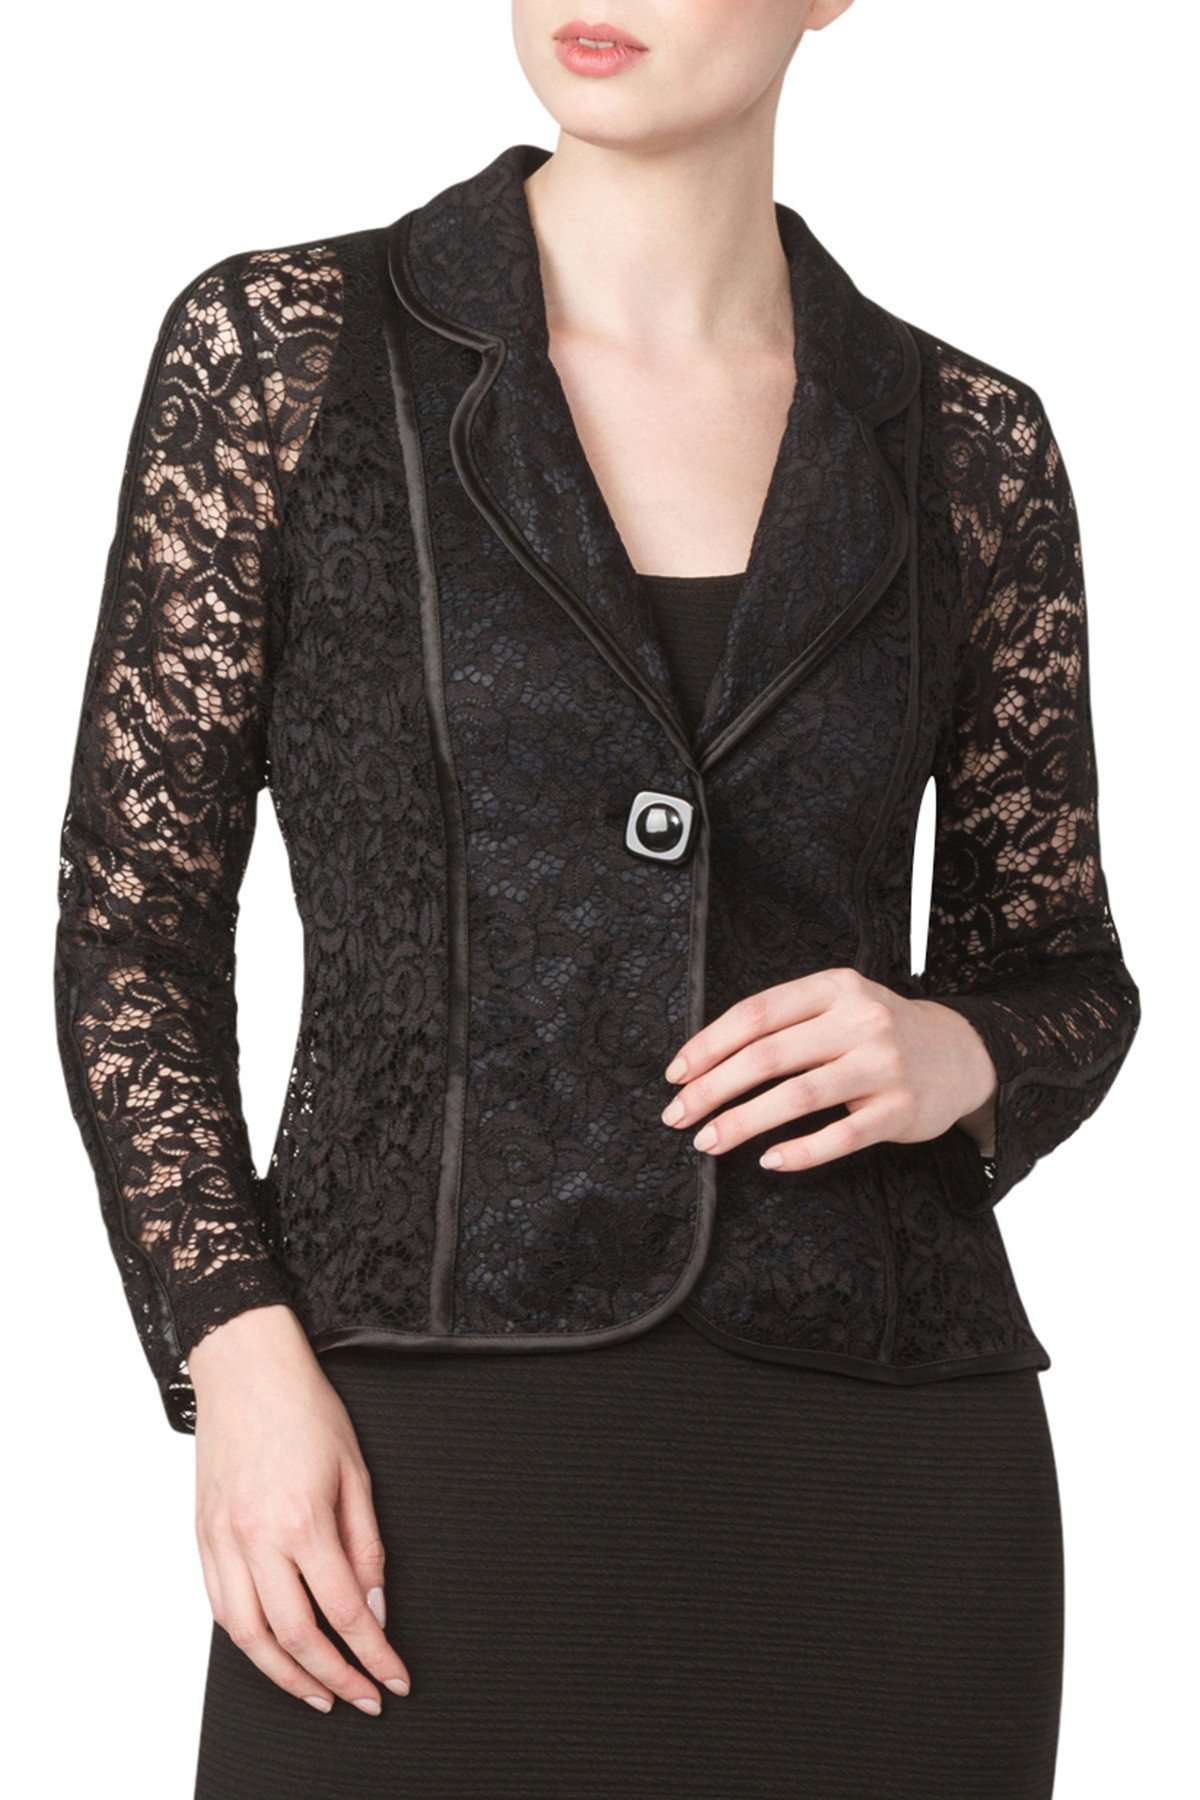 Women's Black Lace Jacket-Now 50 Off-Made in Canada-Shop Local - Yvonne Marie - Yvonne Marie